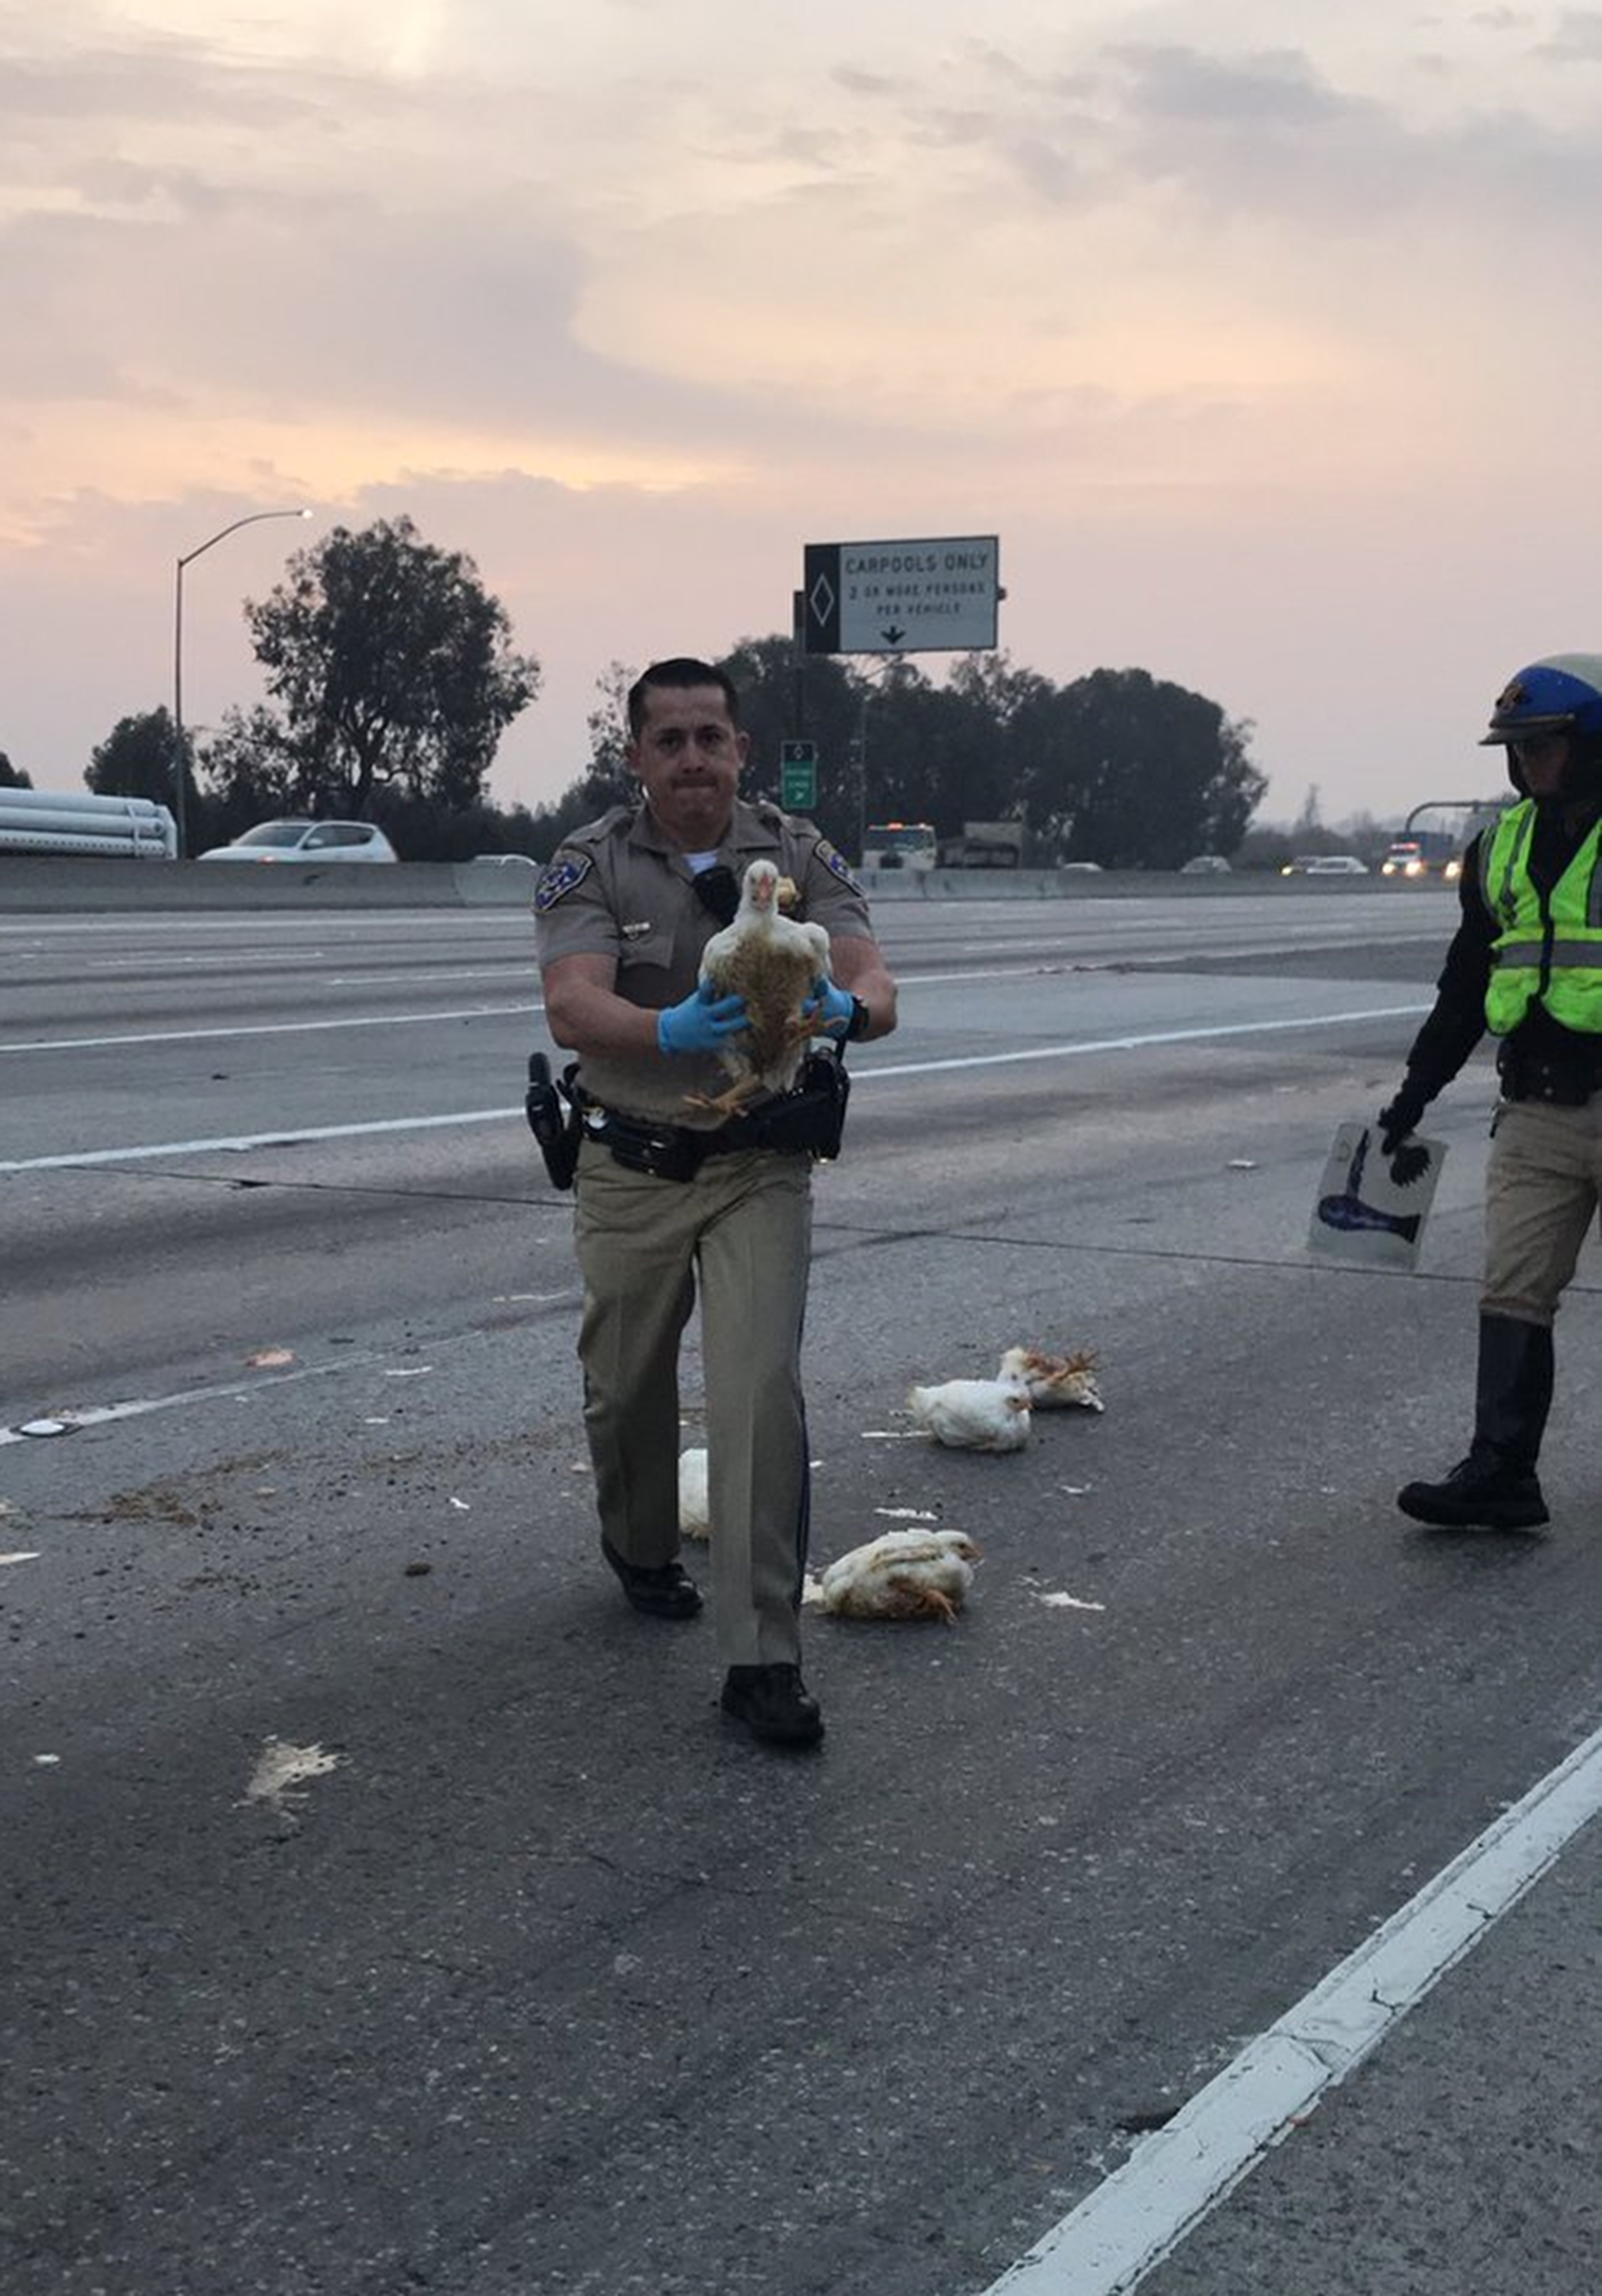 In this photo released by the California Highway Patrol, CHP officer DaSilva rescues nearly 20 chickens that ran through highway lanes in Norwalk, Calif., Tuesday, Jan. 2, 2018. (CHP Officer C.Lillie/California Highway Patrol via AP)